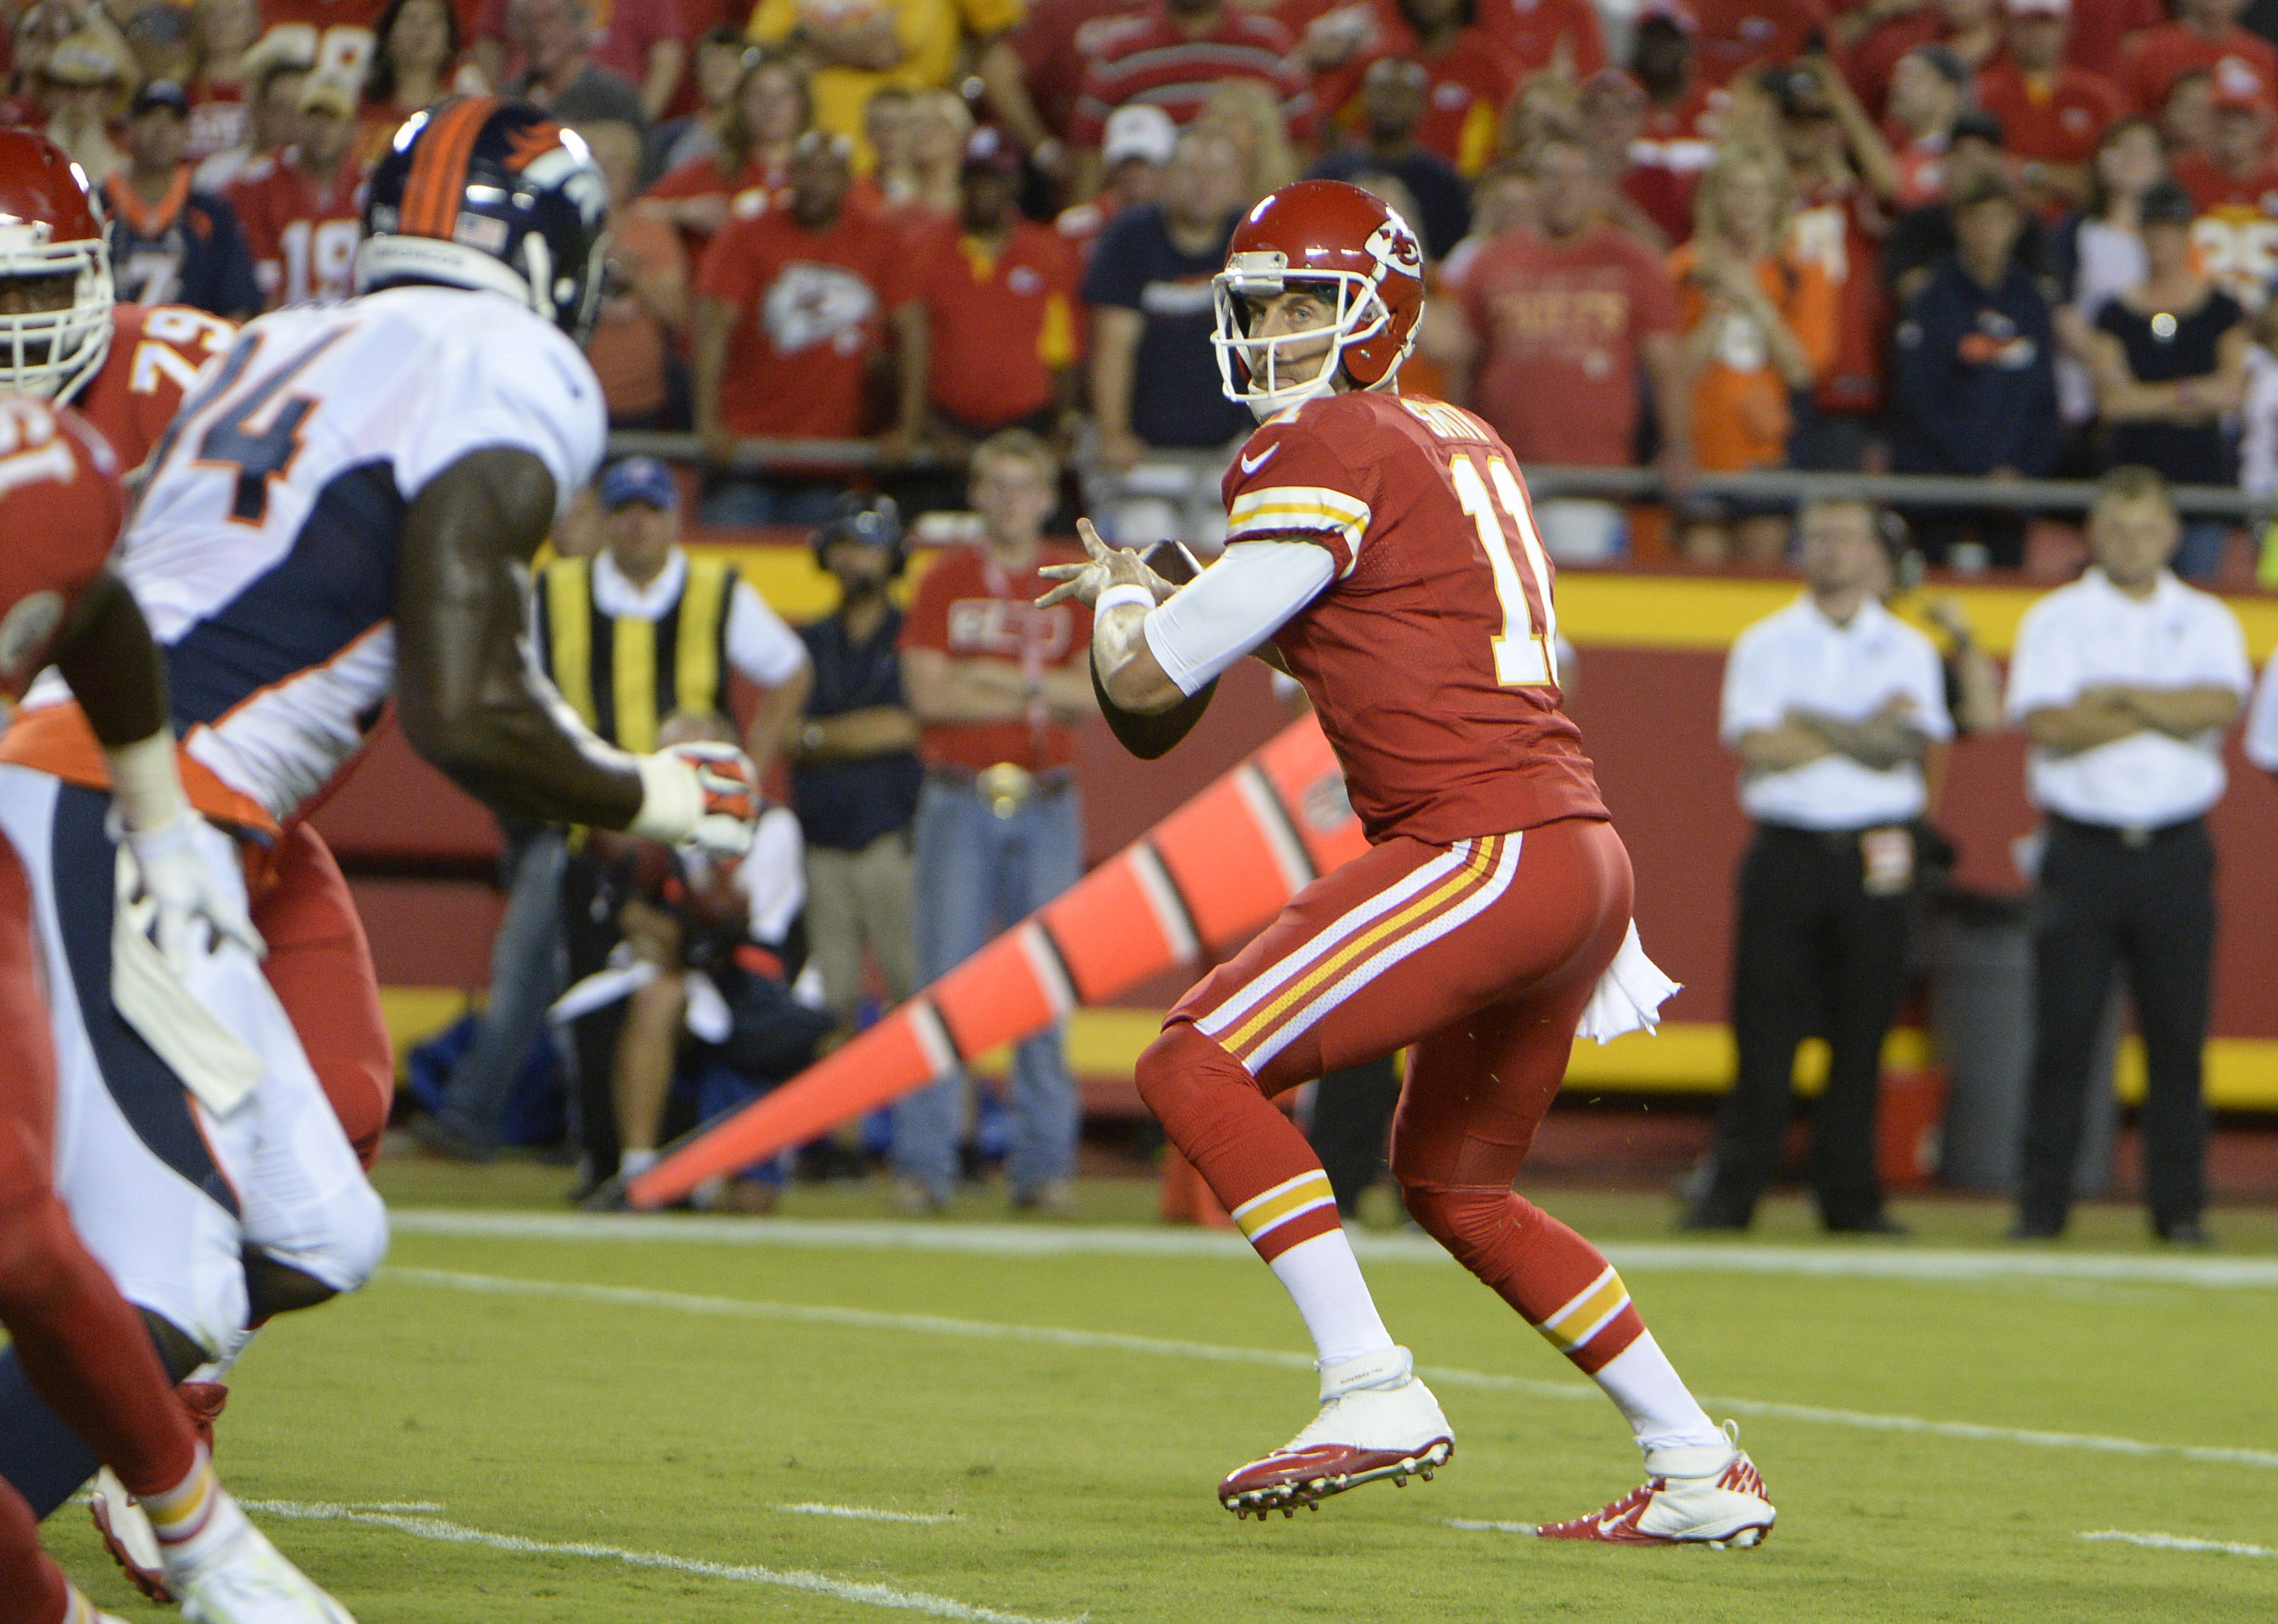 Here's a crazy thing about Alex Smith that you haven't heard yet